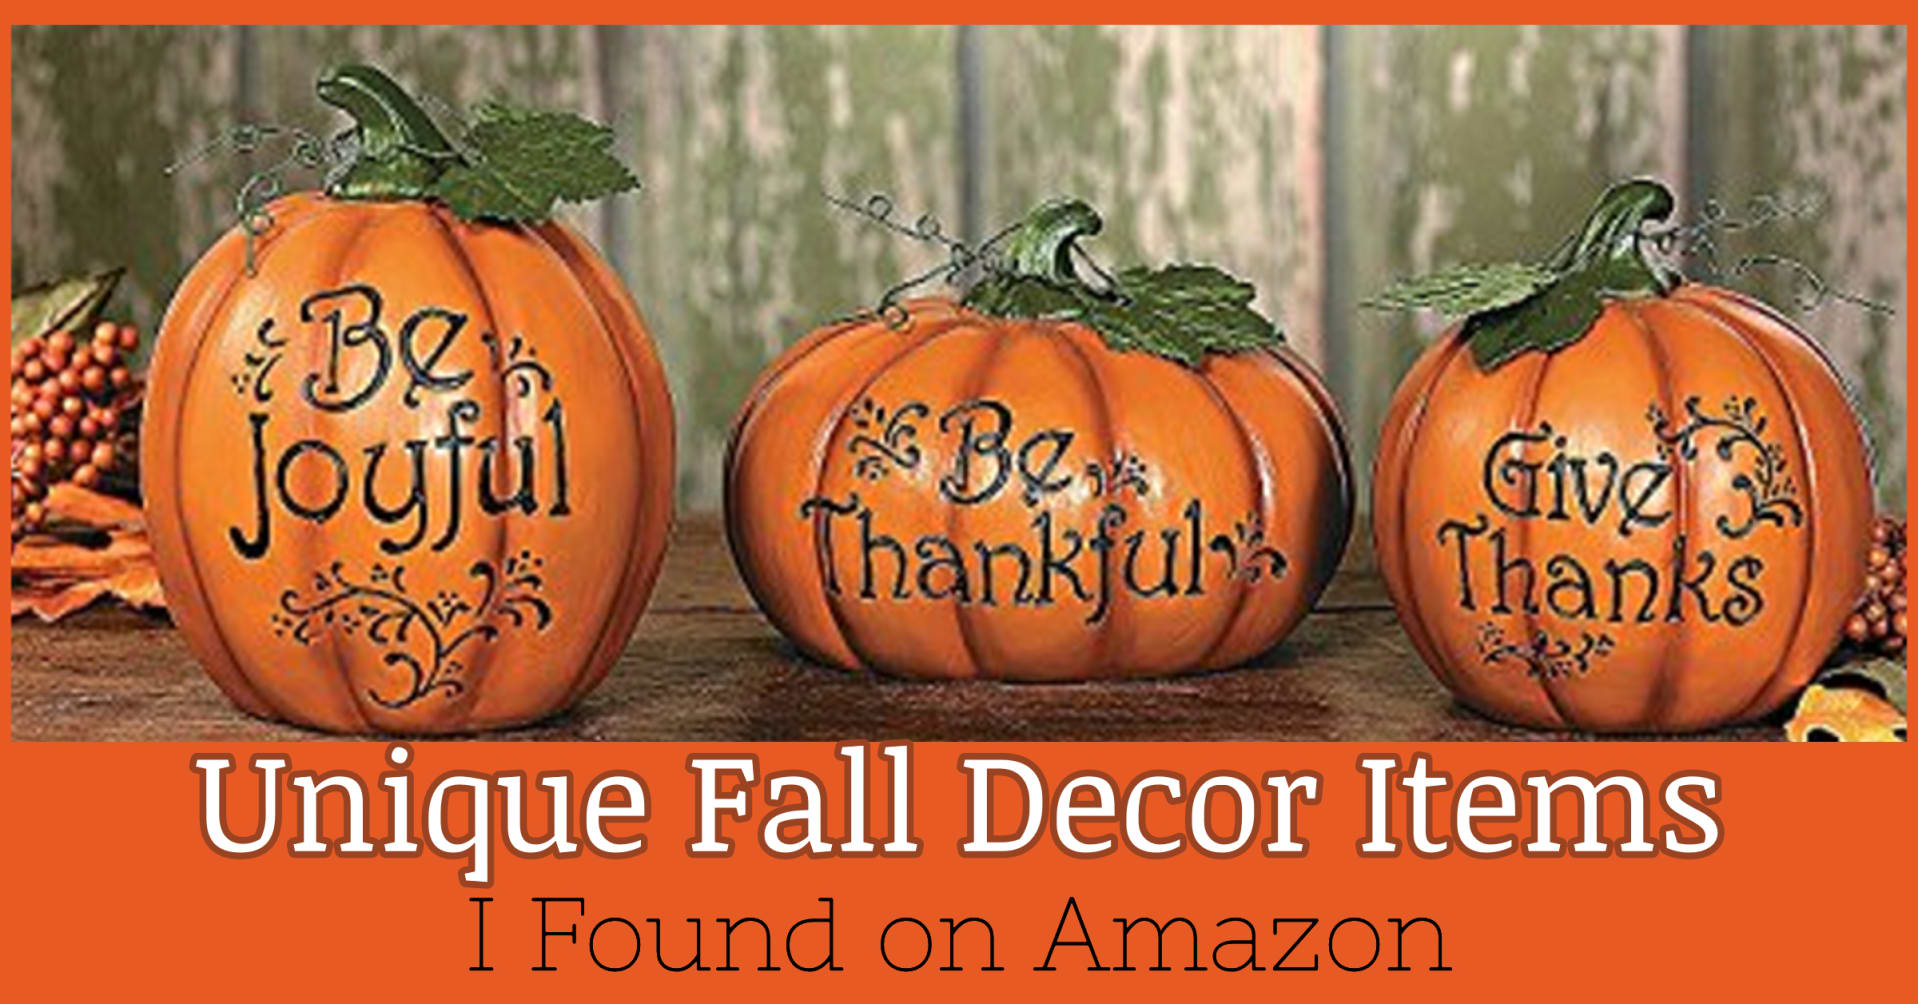 Autumn Decor Ideas - 21 Unique Autumn Decorations I Found On Amazon